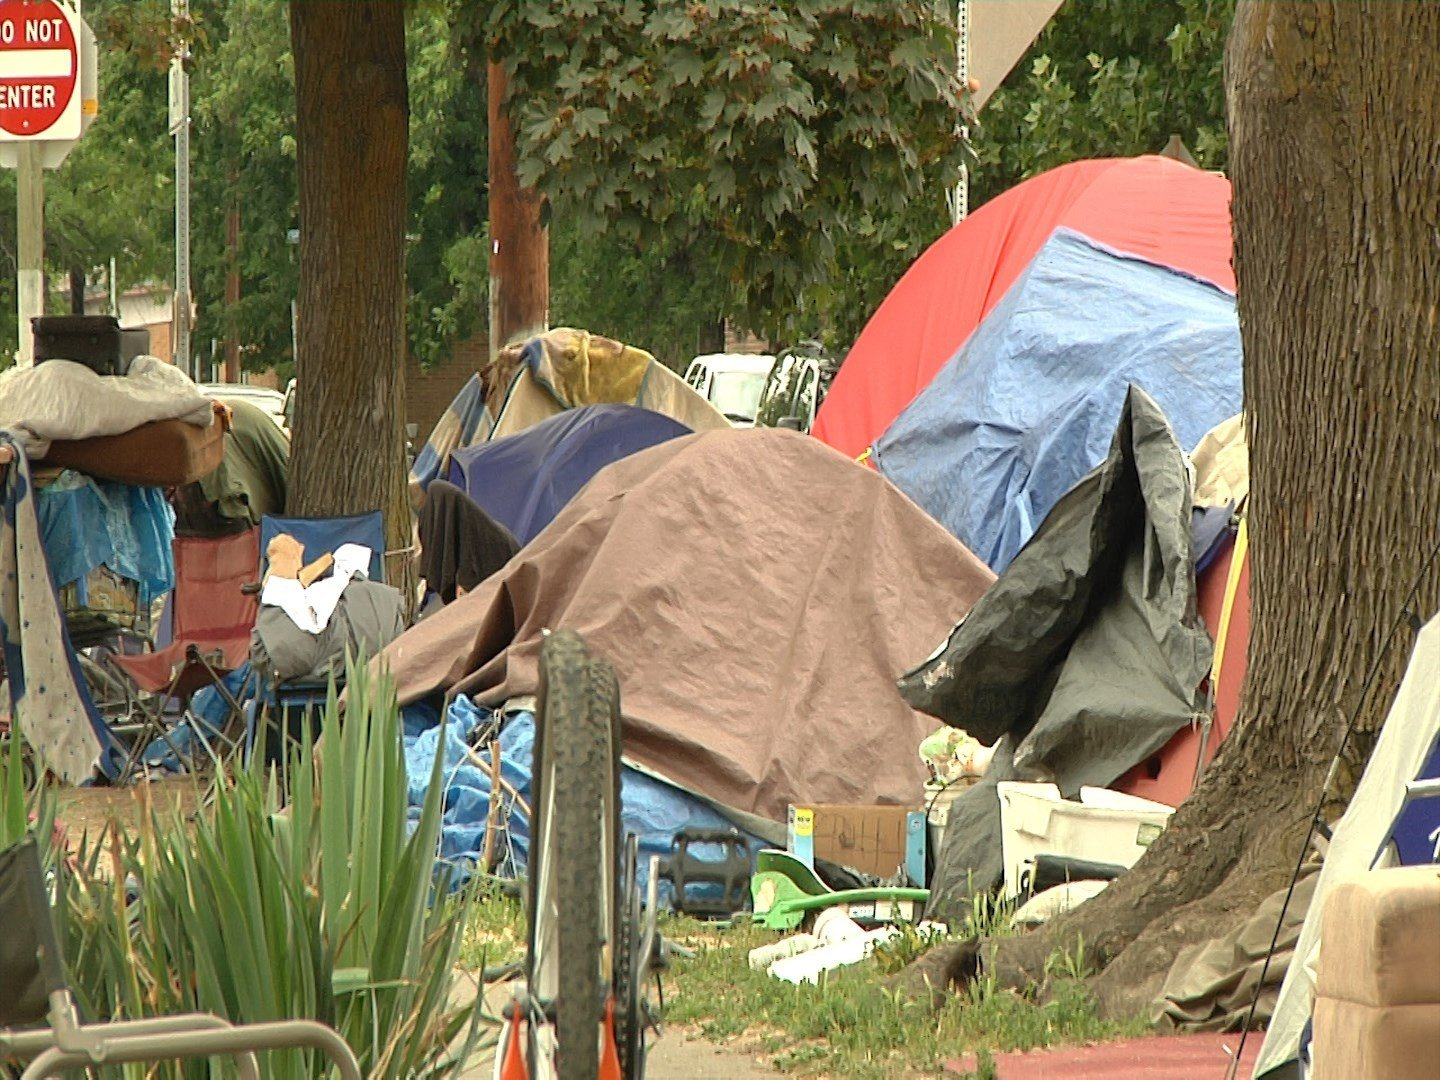 Homeless Encampment (File)